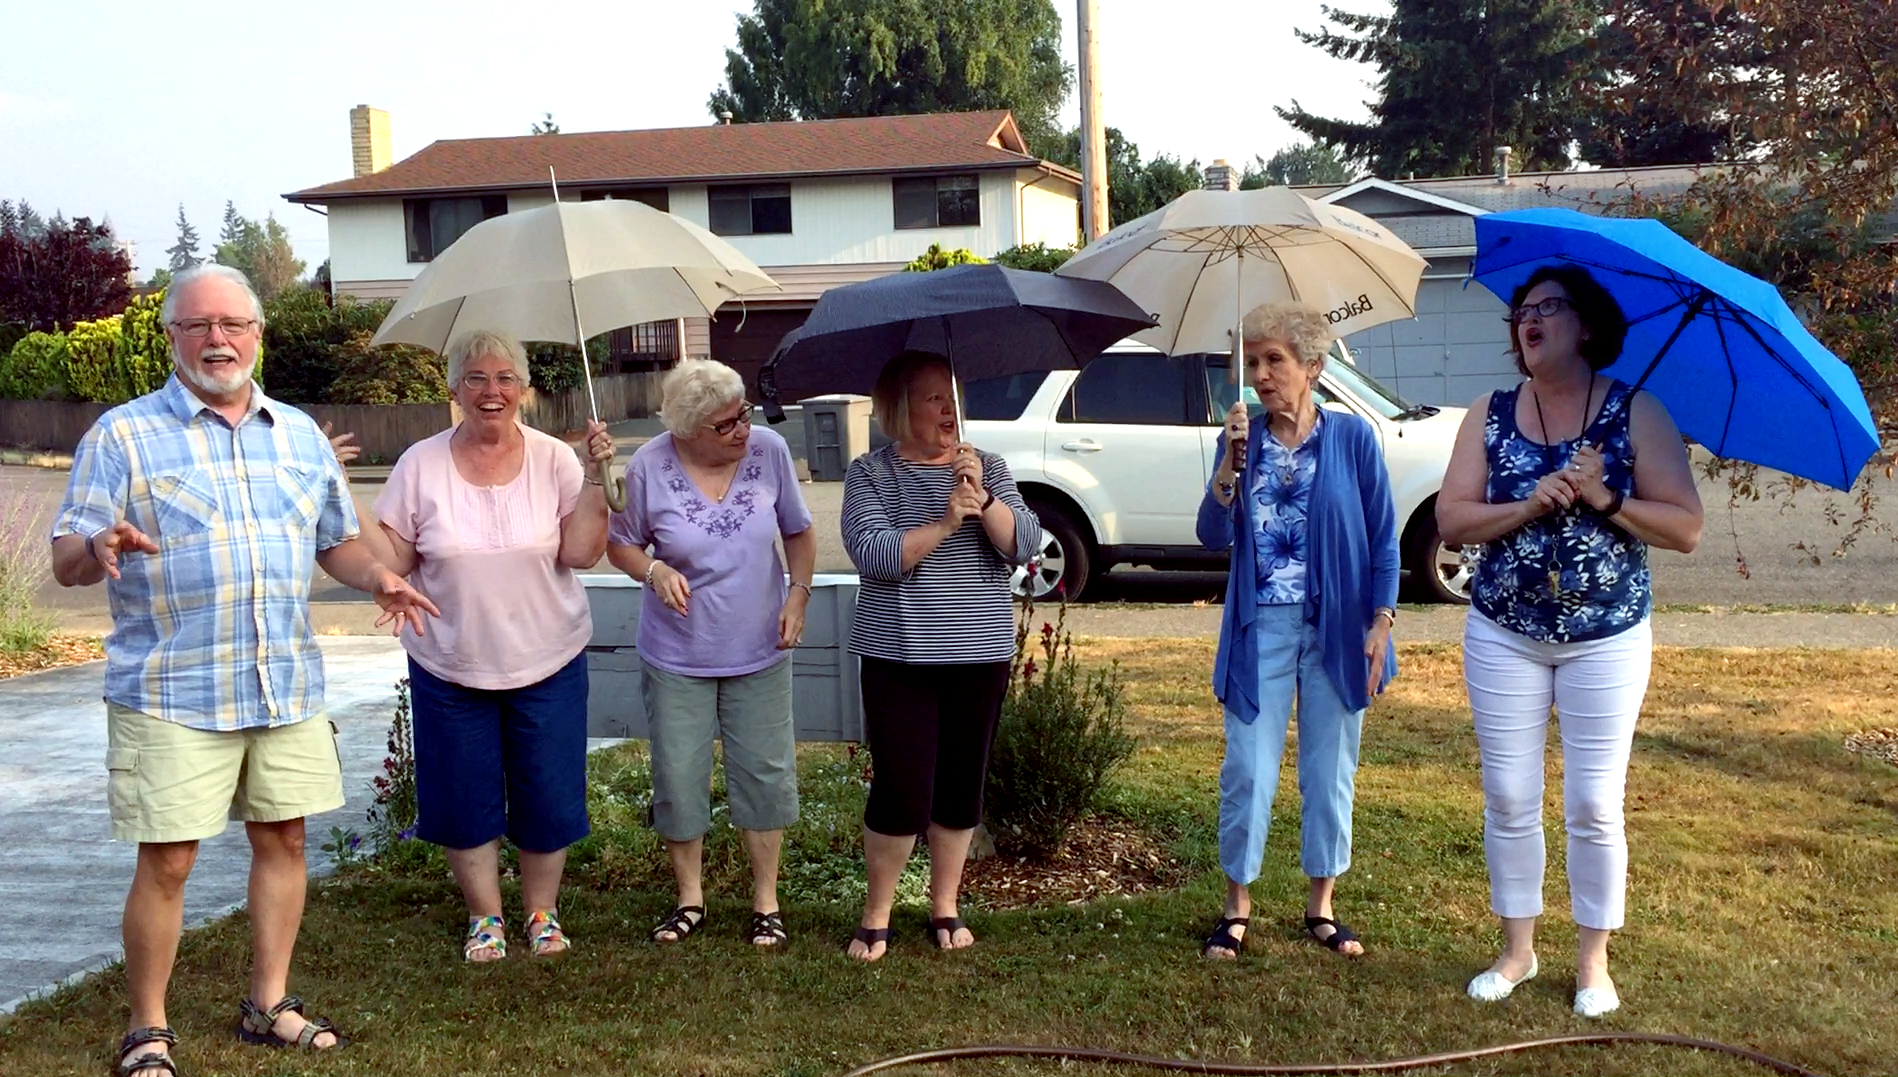 Everybody's mad. I'm mad. Even my sort of creeping fascination with what's happening in this country has slowed and resolved as anger. Charlottesville was clarity, if anything.  But my wife preached an awesome sermon this morning, and I can't stay mad forever. This picture helps. From our  Singing in the Rain night, as my wife (far right) led a group out to the front lawn of the church and played in the sprinkler, sang the title song, and just made the world a better place. I smile just looking at it.